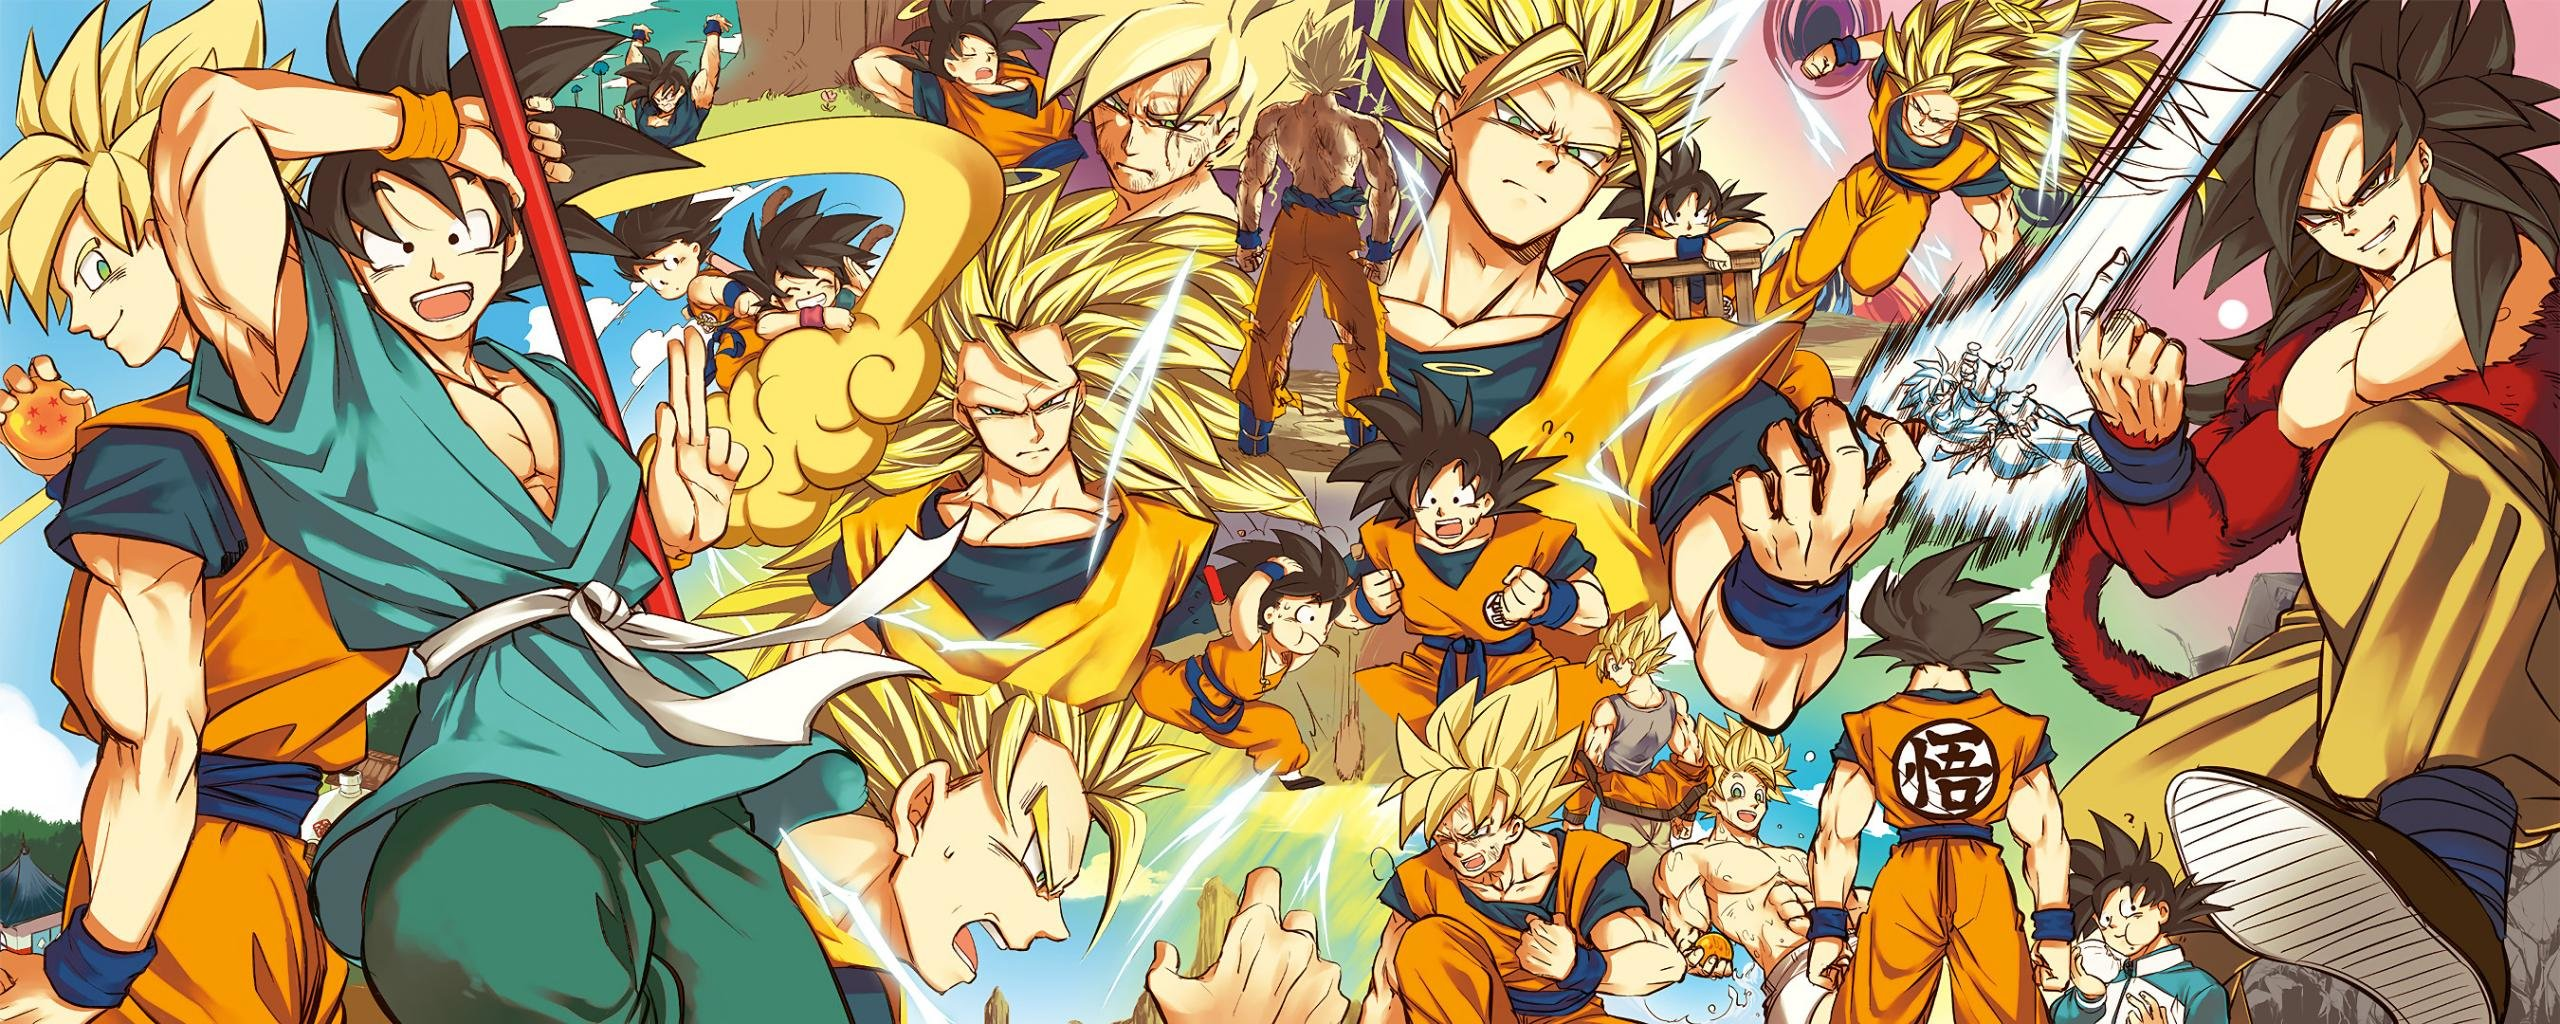 Top Wallpaper Naruto Dual Screen - dragon-ball-z-dbz-wallpaper-dual-screen-2560x1024-461957  Graphic_394859.jpg